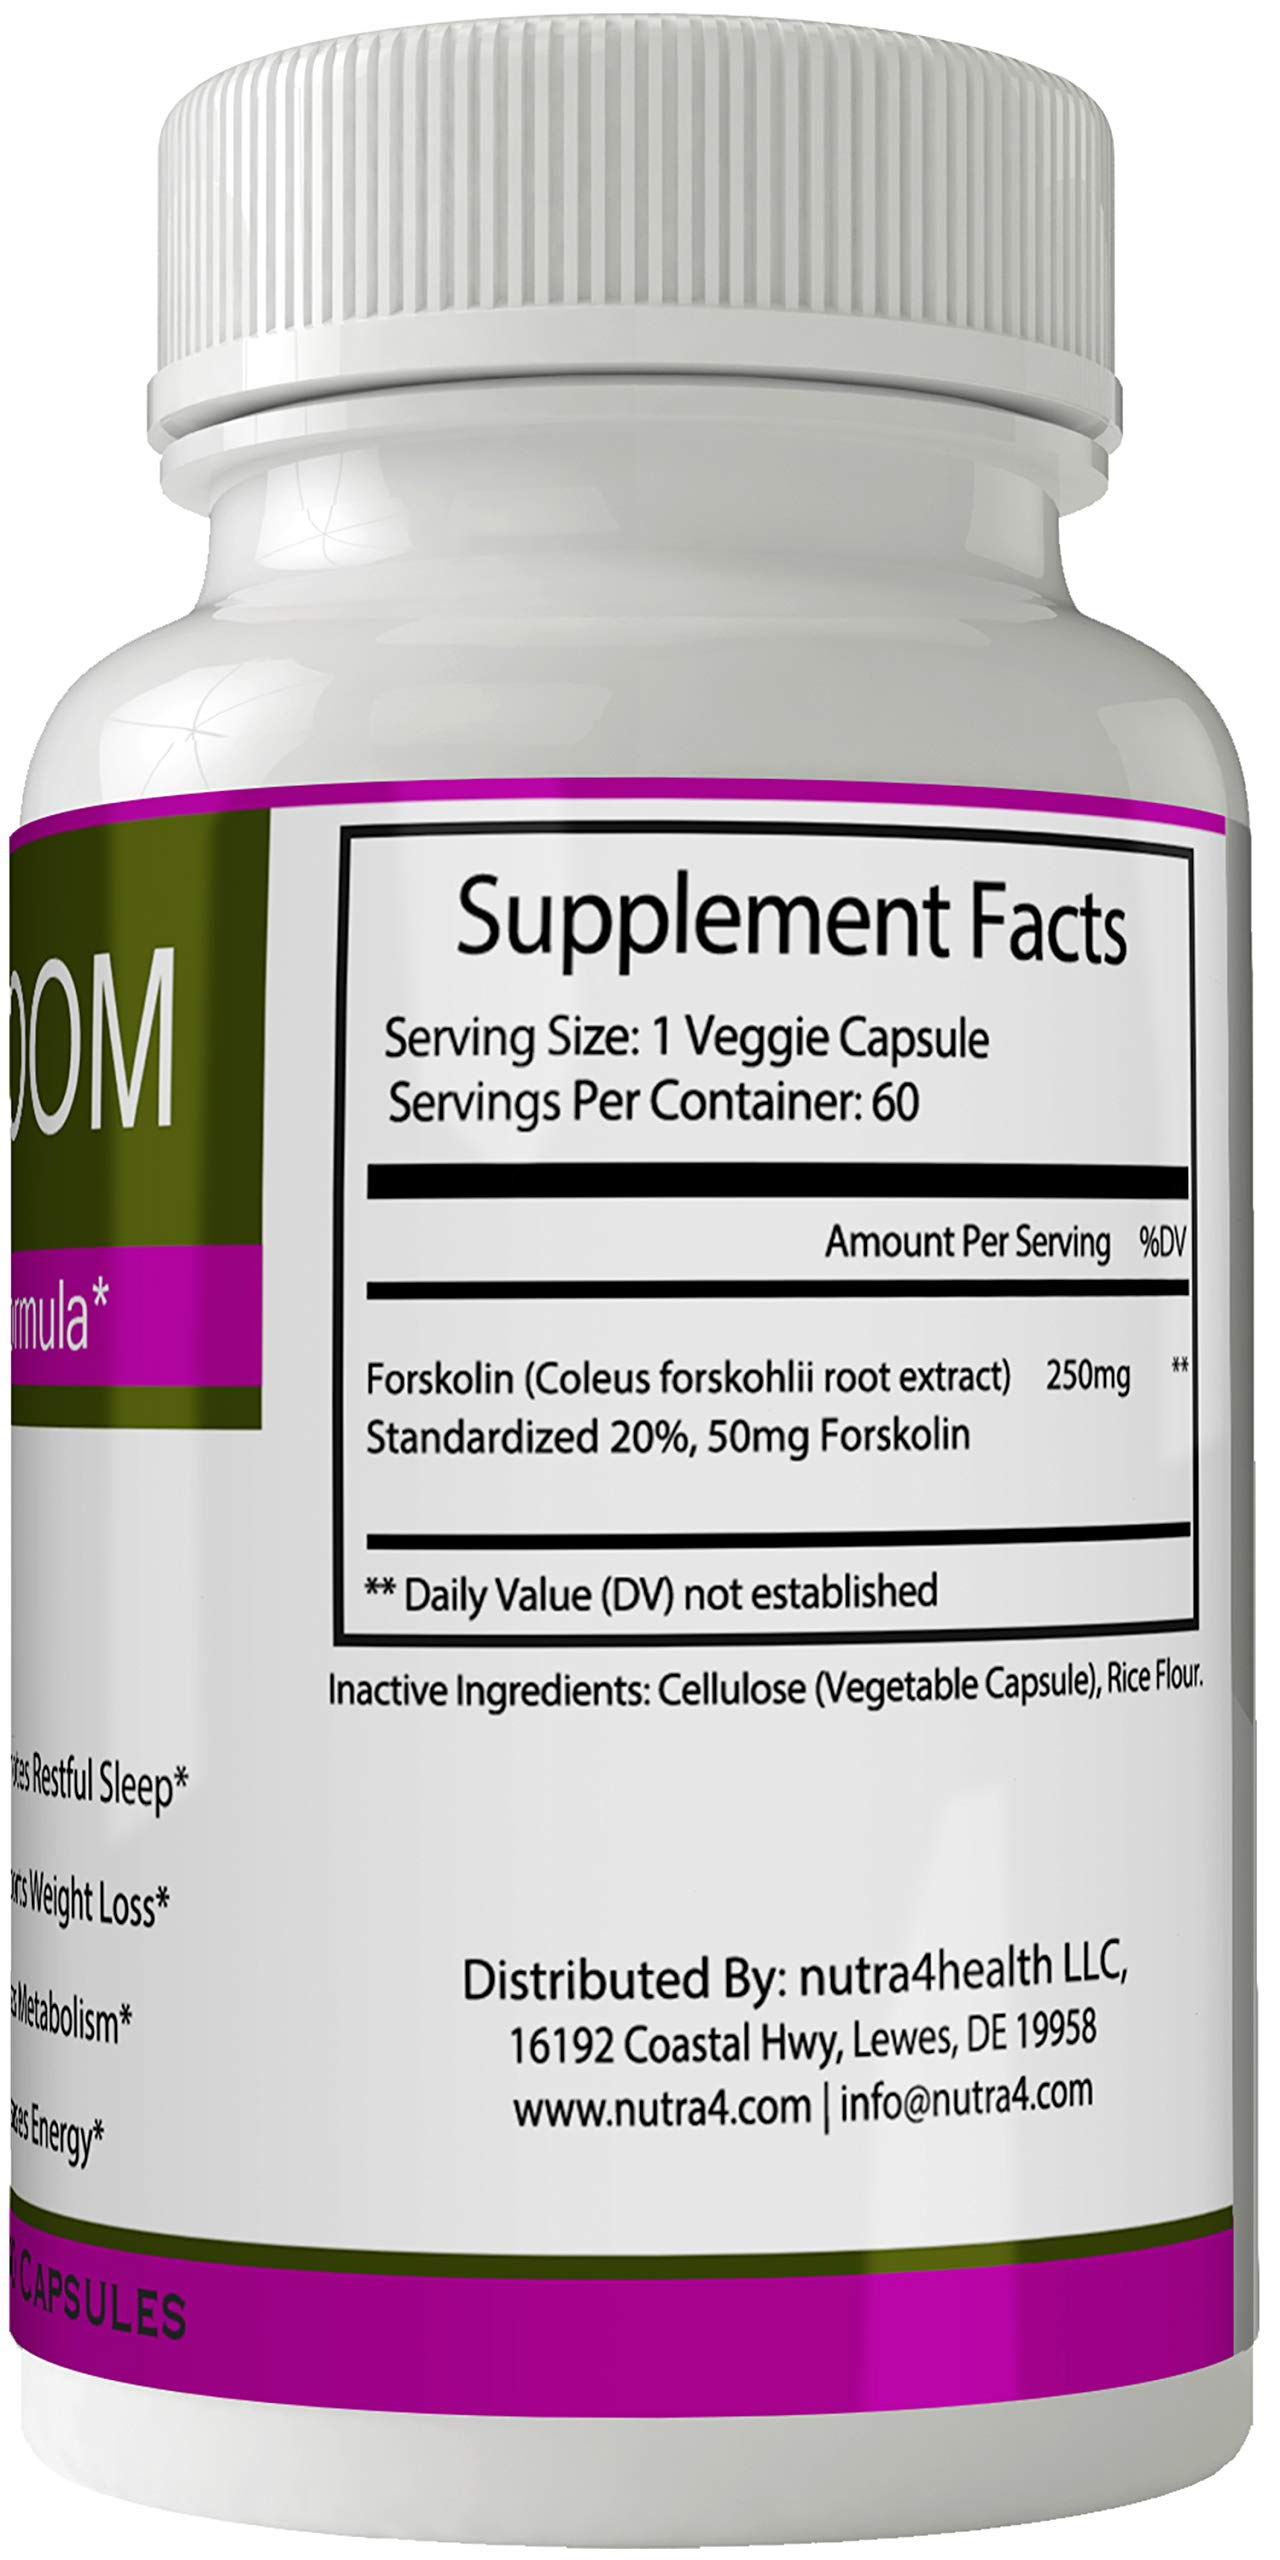 Ketobloom Forskolin for Weight Loss Diet Pills Supplement Capsules with Premium Forskolin Extract Tablets   Keto Bloom High Quality Natural Weightloss by nutra4health LLC (Image #2)